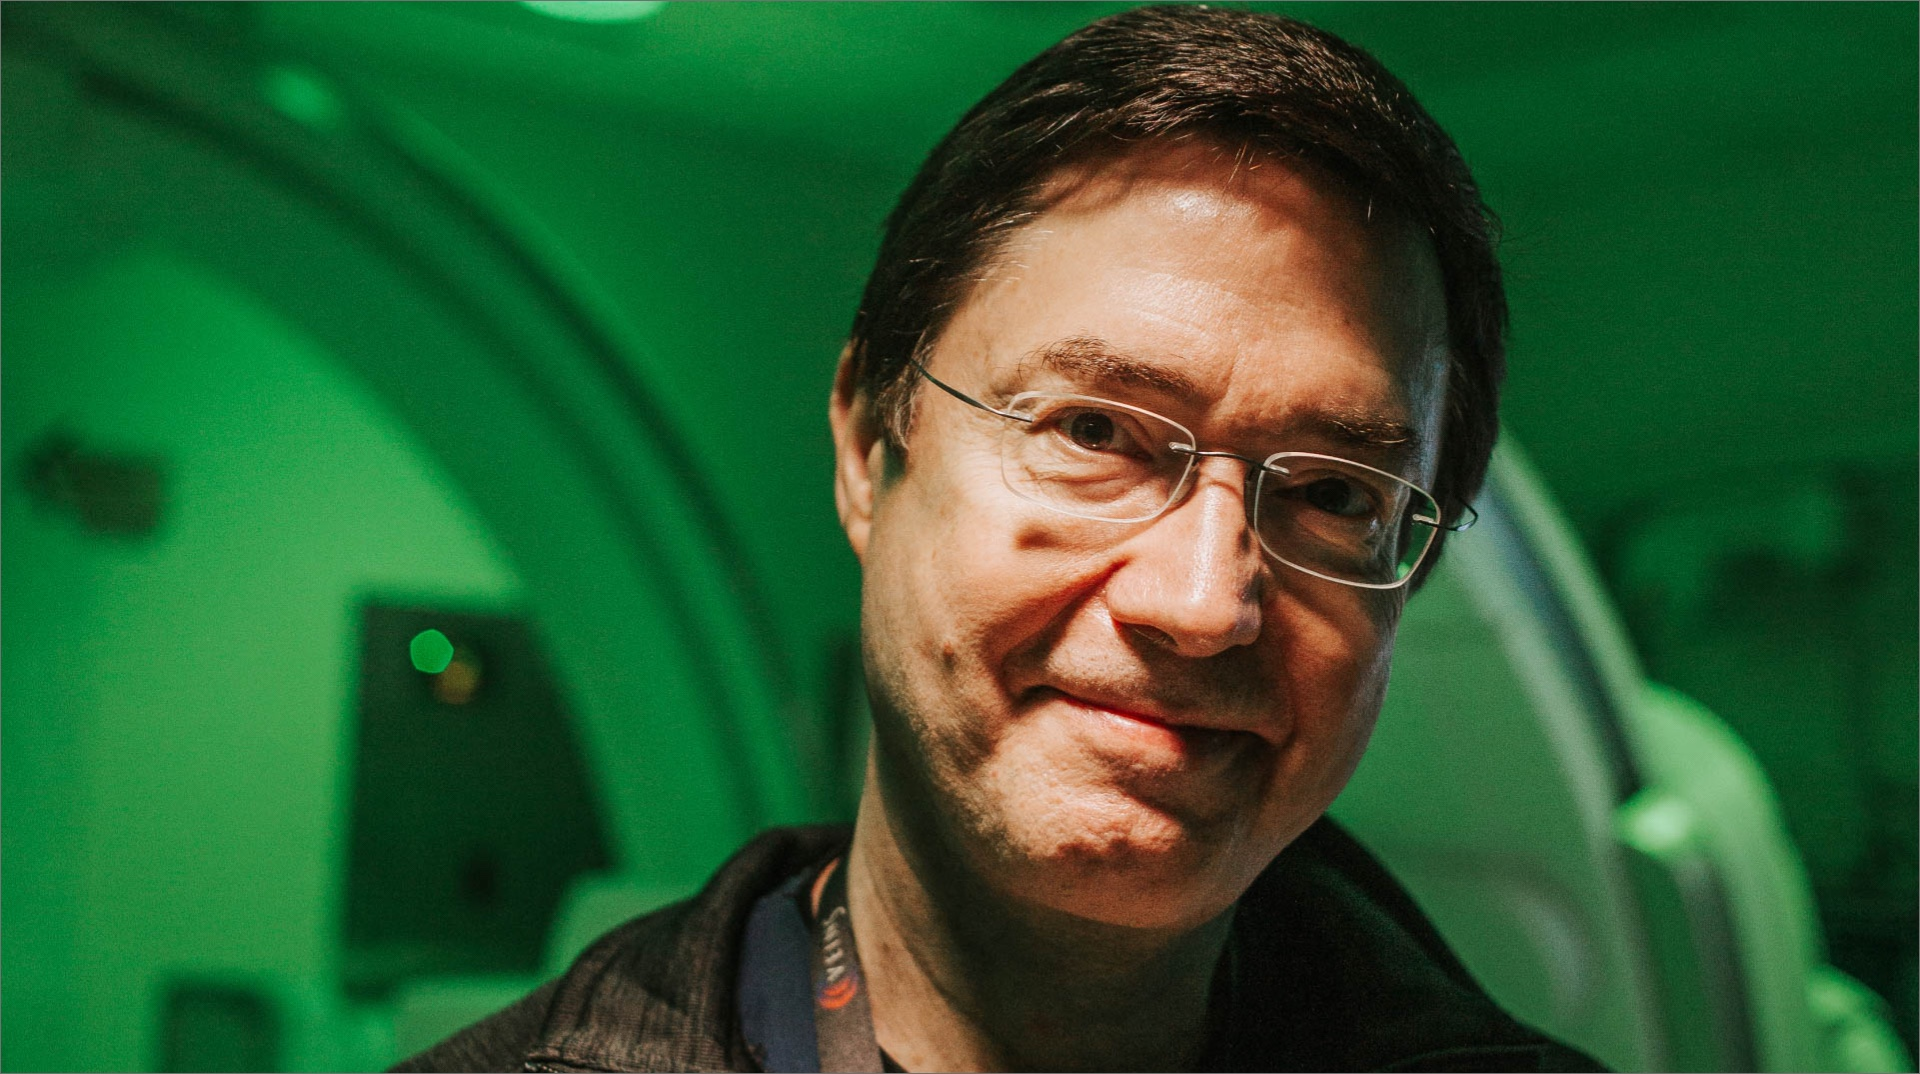 A portrait of Dr. Gurley, a middle-aged white man with dark hair and glasses. He is smiling slightly and standing in a medical setting, which is cast in a green light.